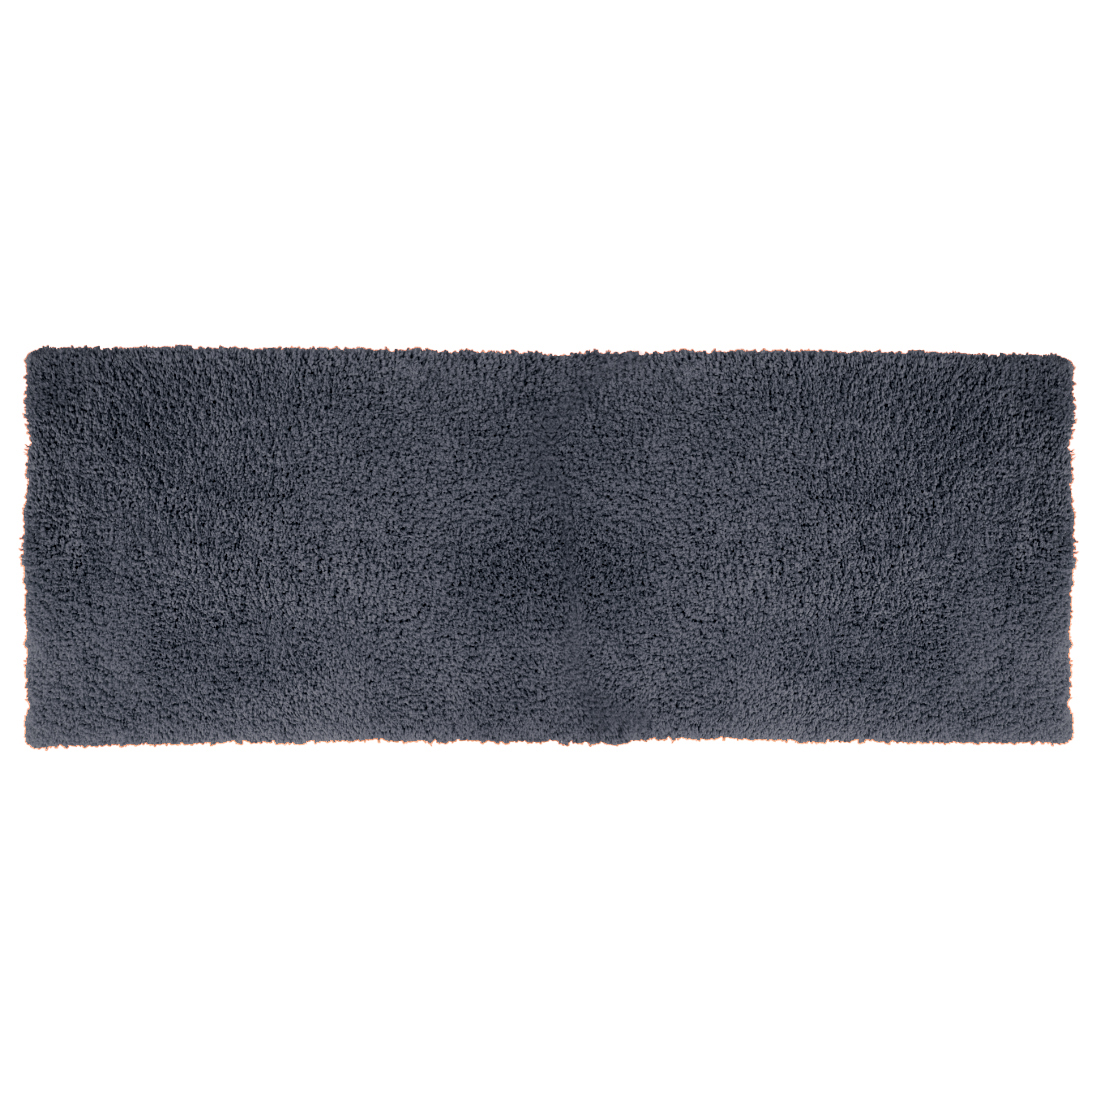 Nora Chenille Bath Mats in Grey Colour by Living Essence